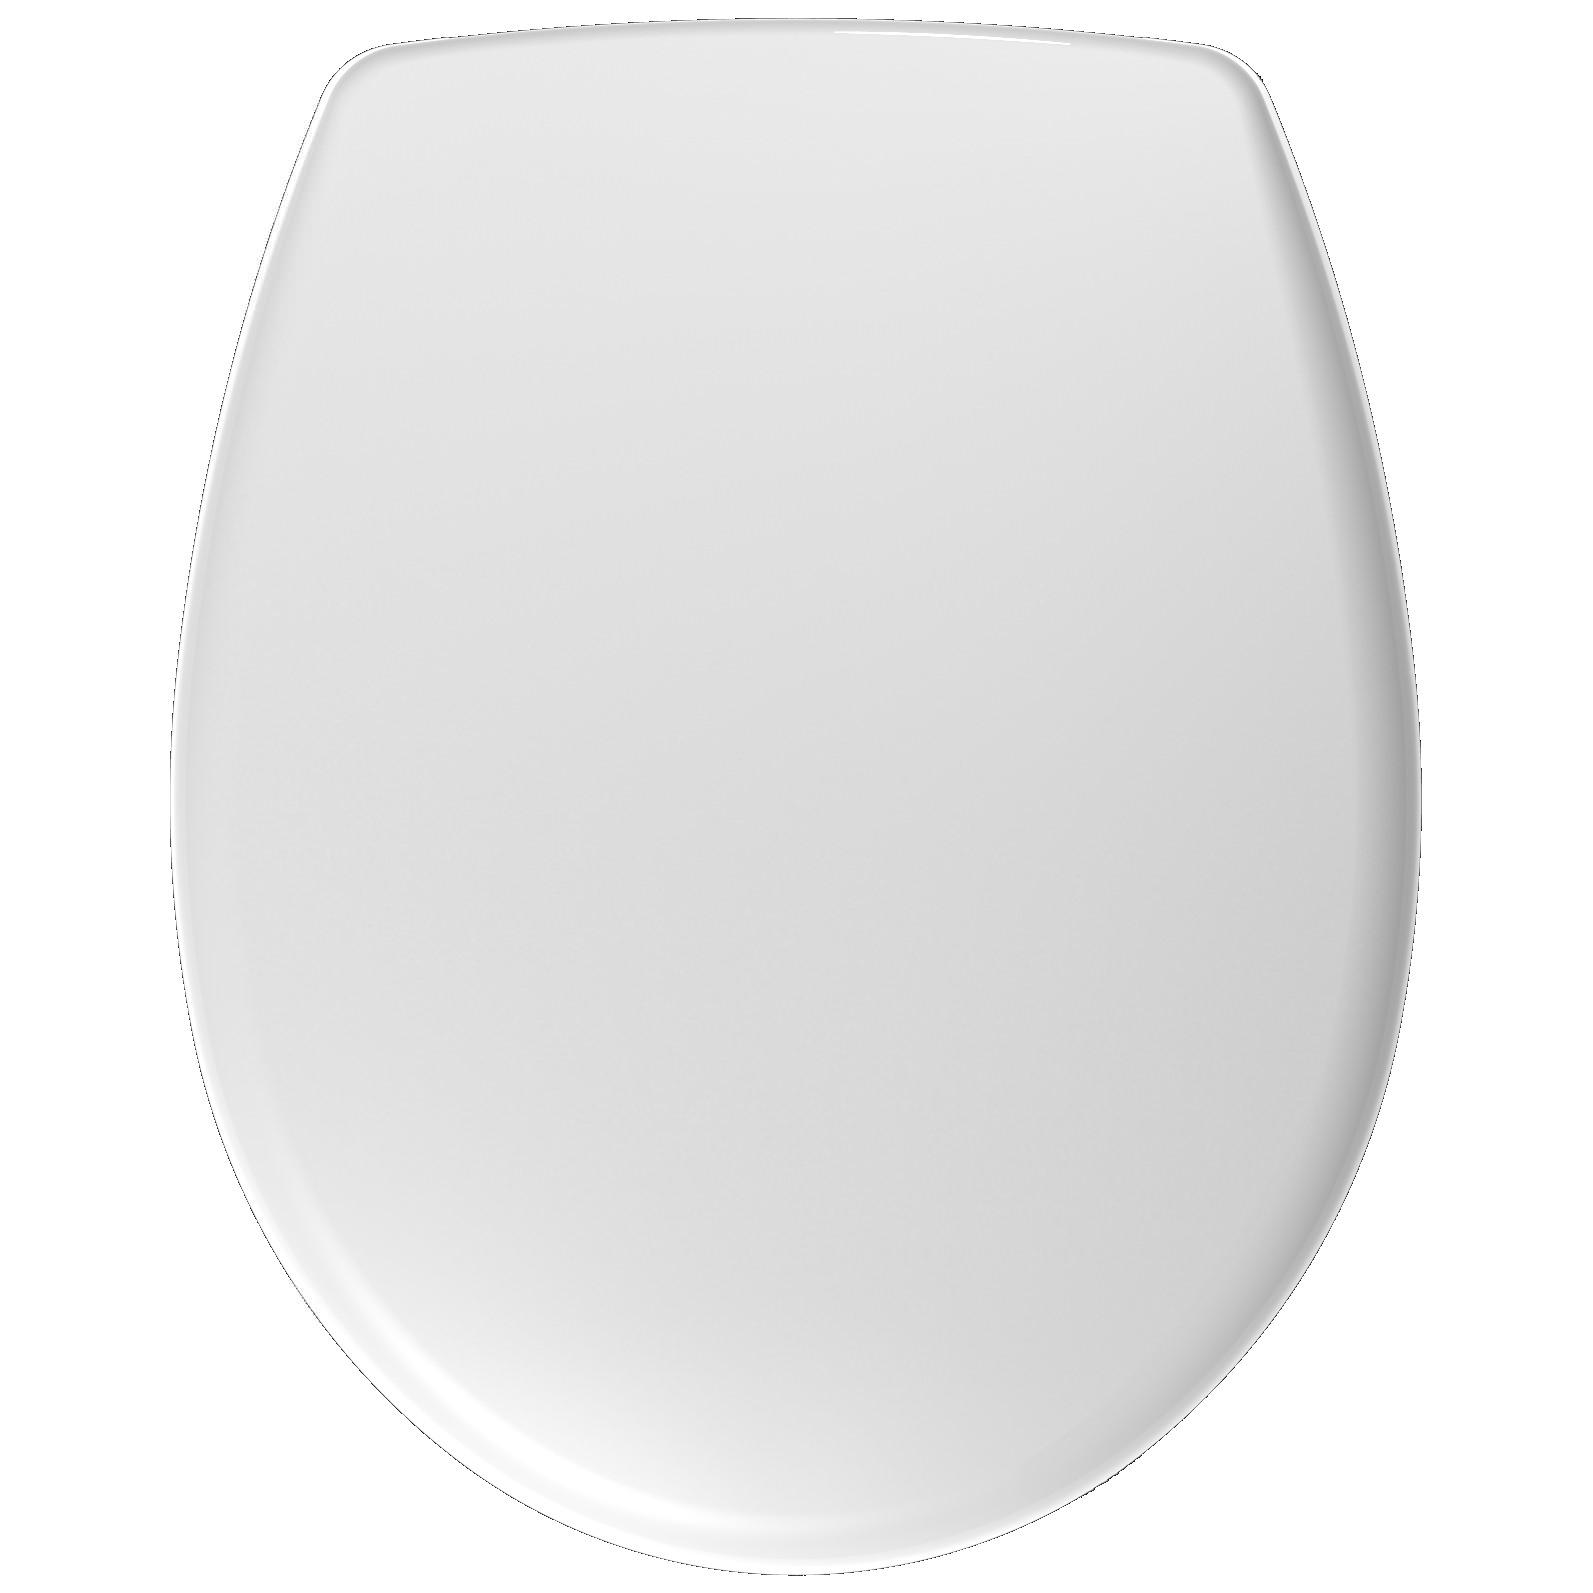 twyford galerie toilet seat and cover with top fix ss hinges  how to tighten hinges on kitchen cabinets